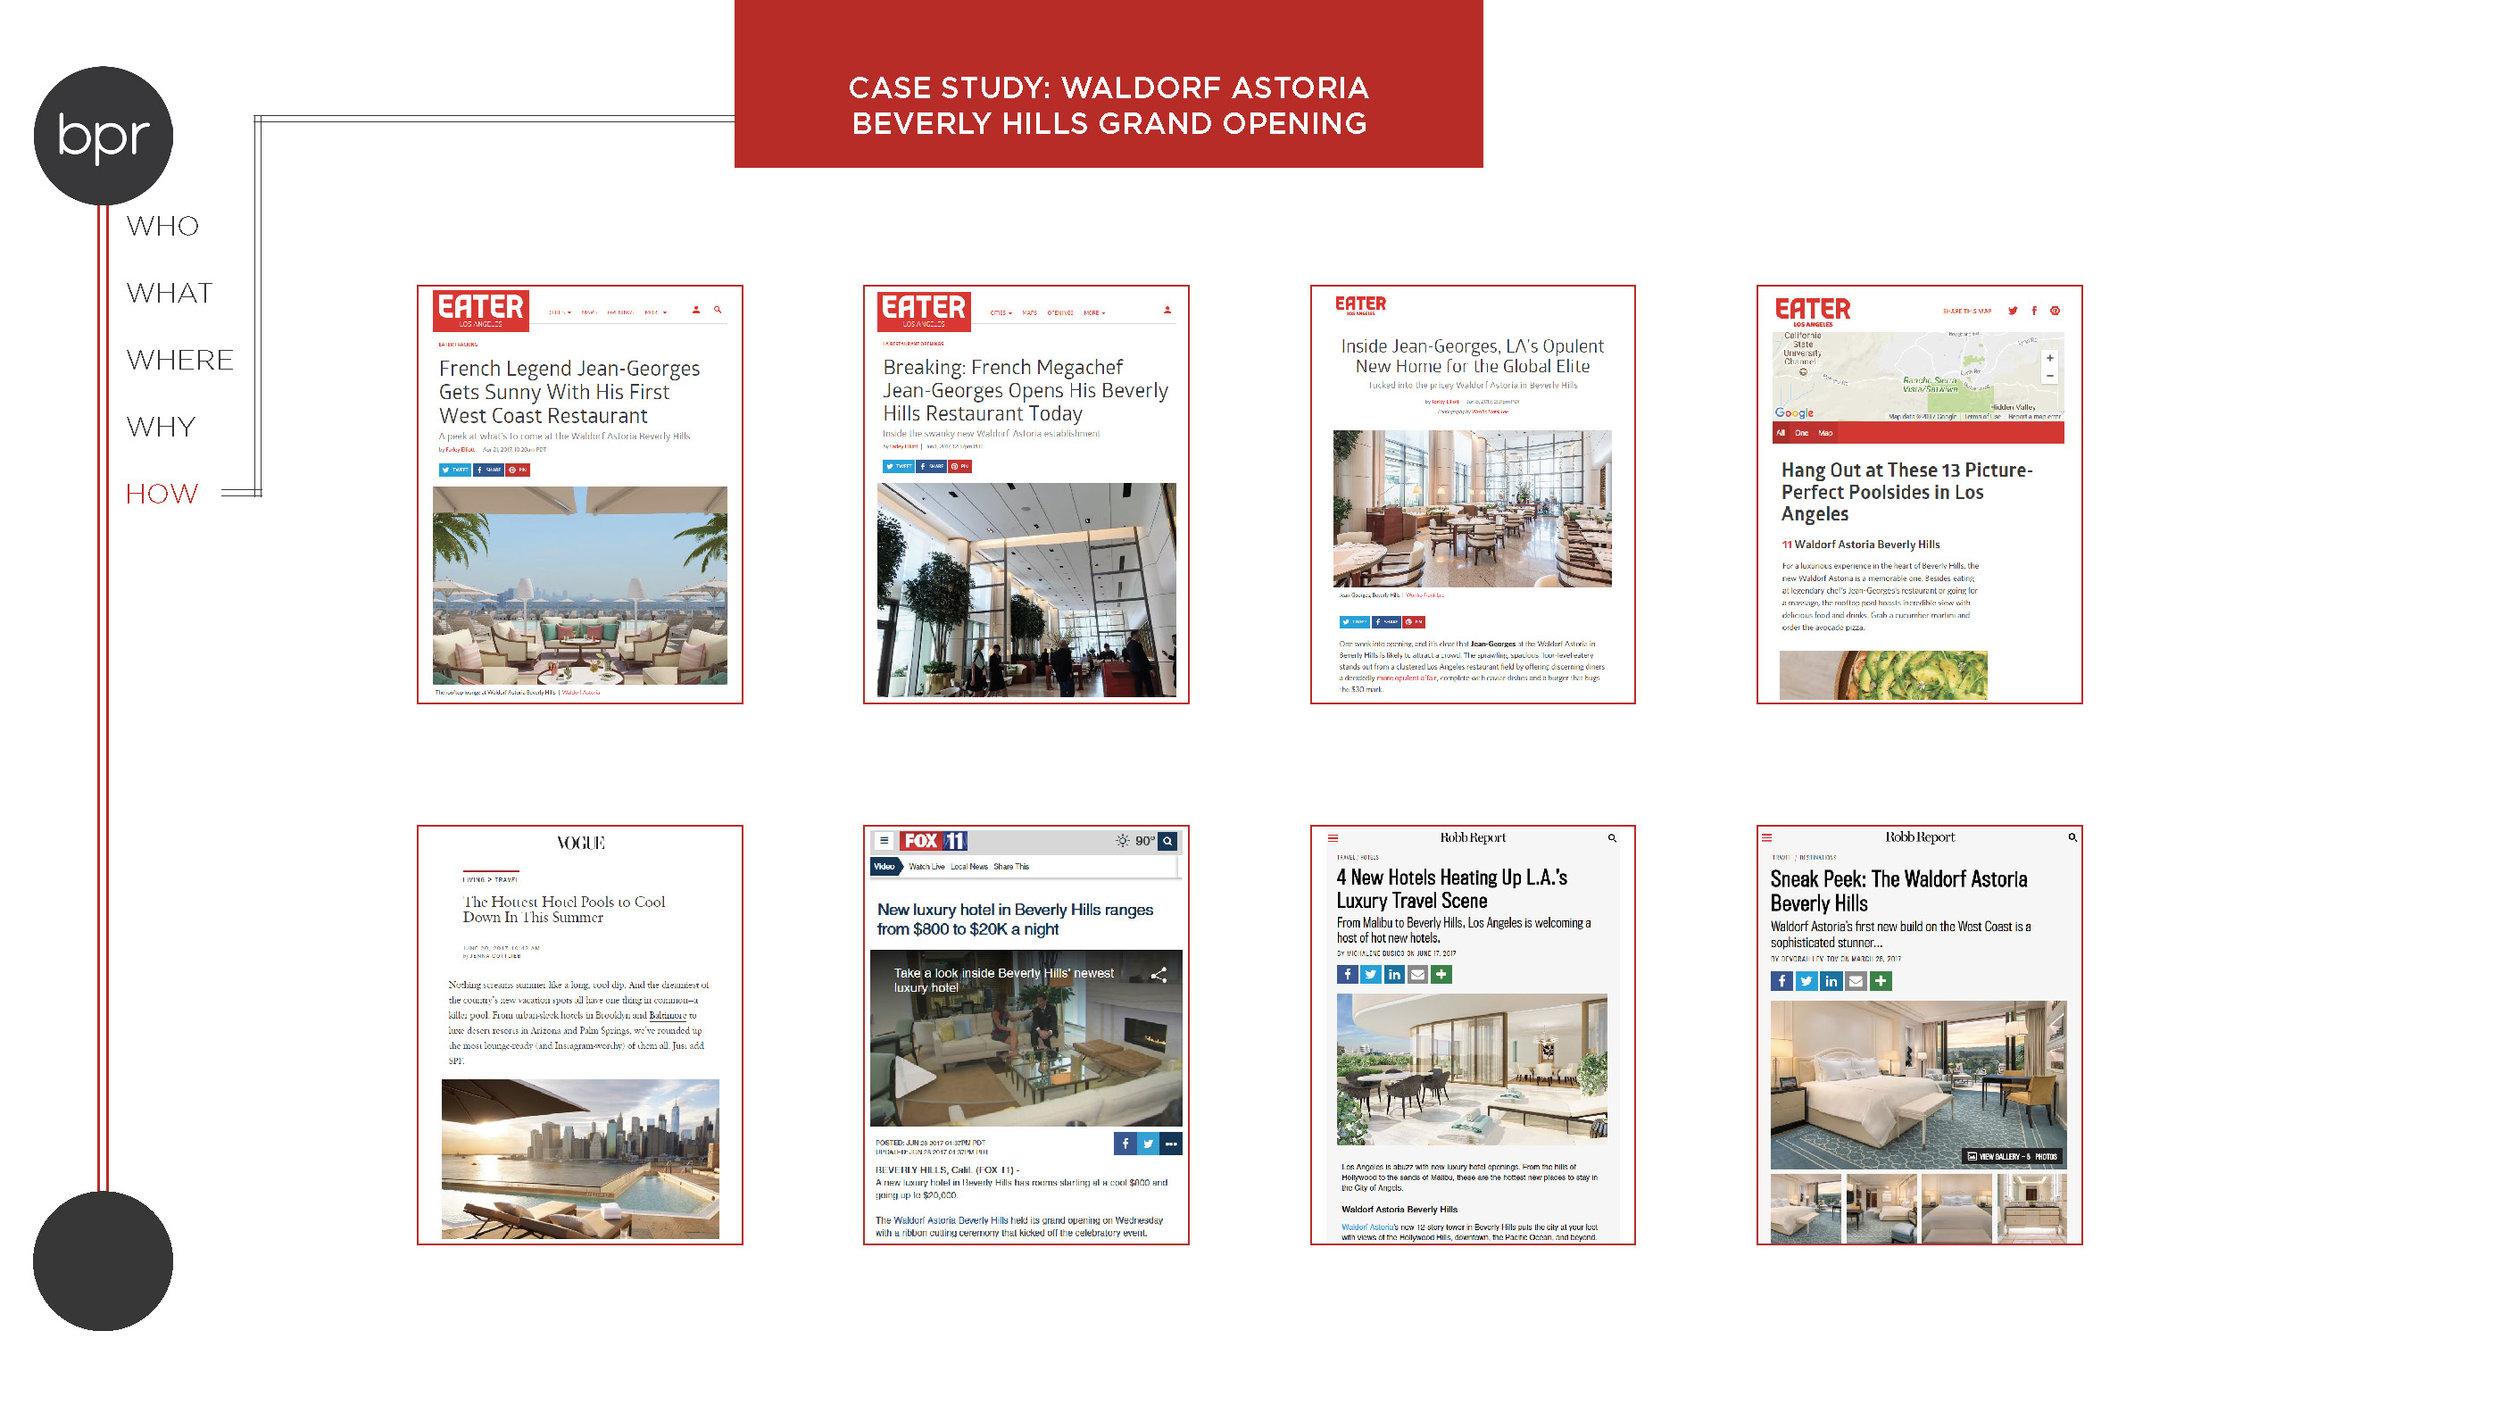 WABH Opening Case Study_Page_5.jpg